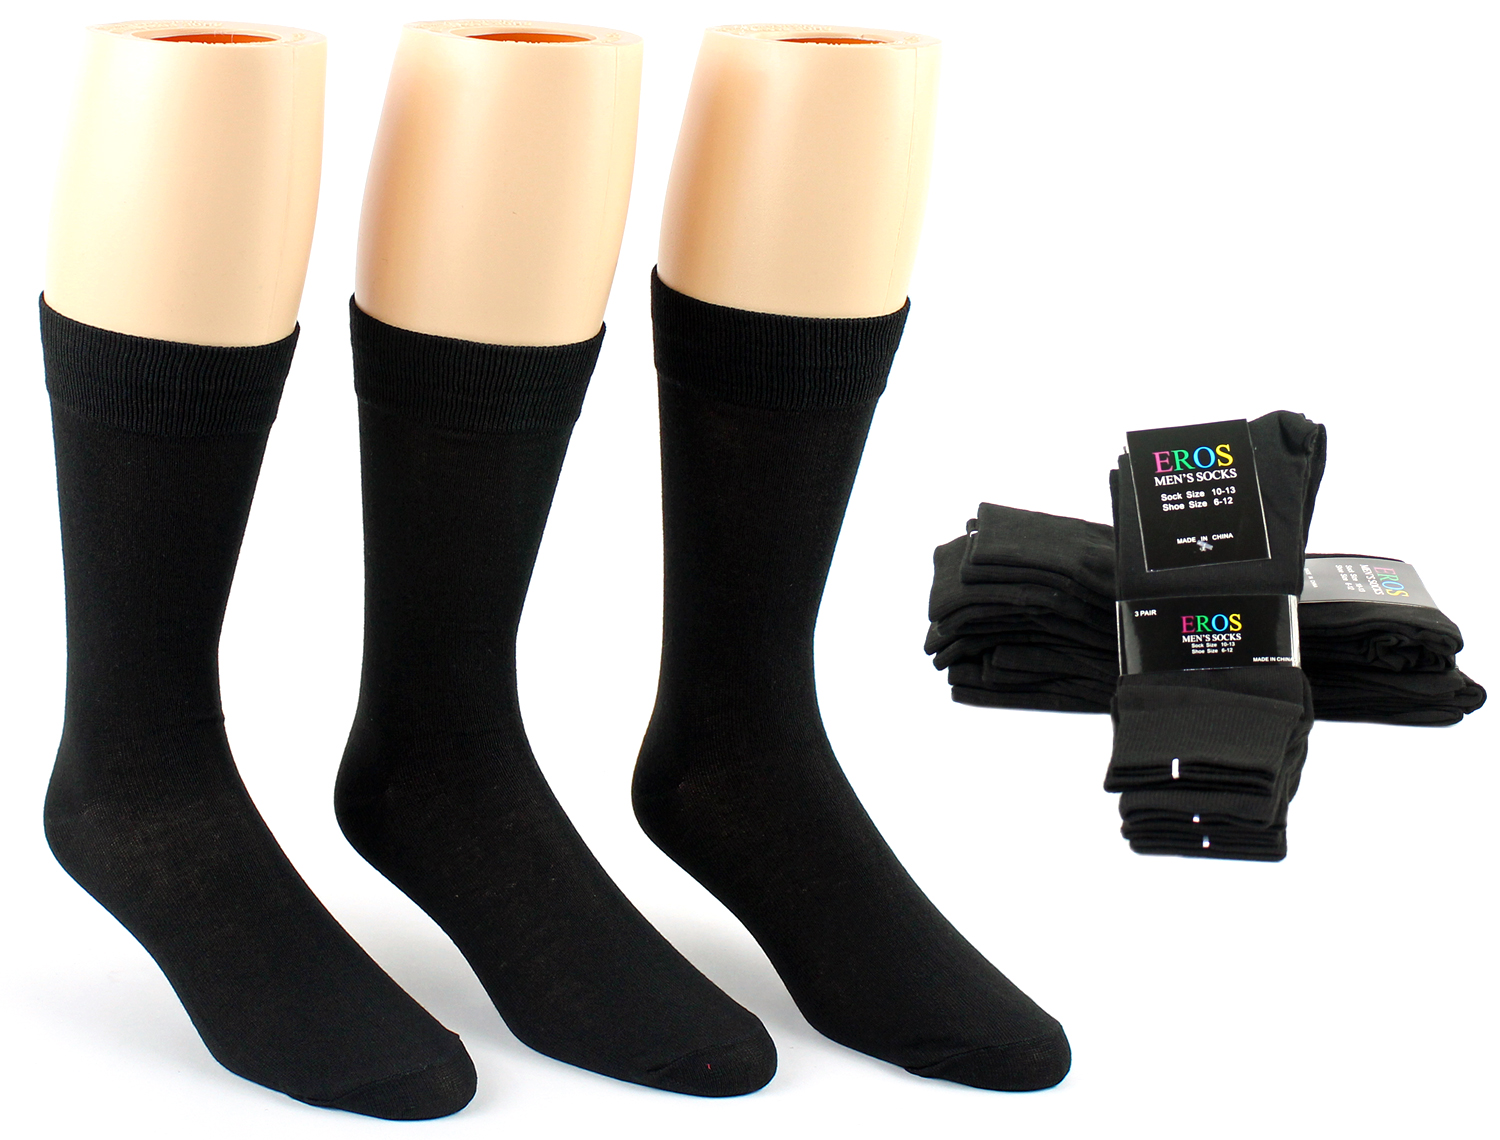 Men's Black Classic Crew DRESS Socks - Size 10-13